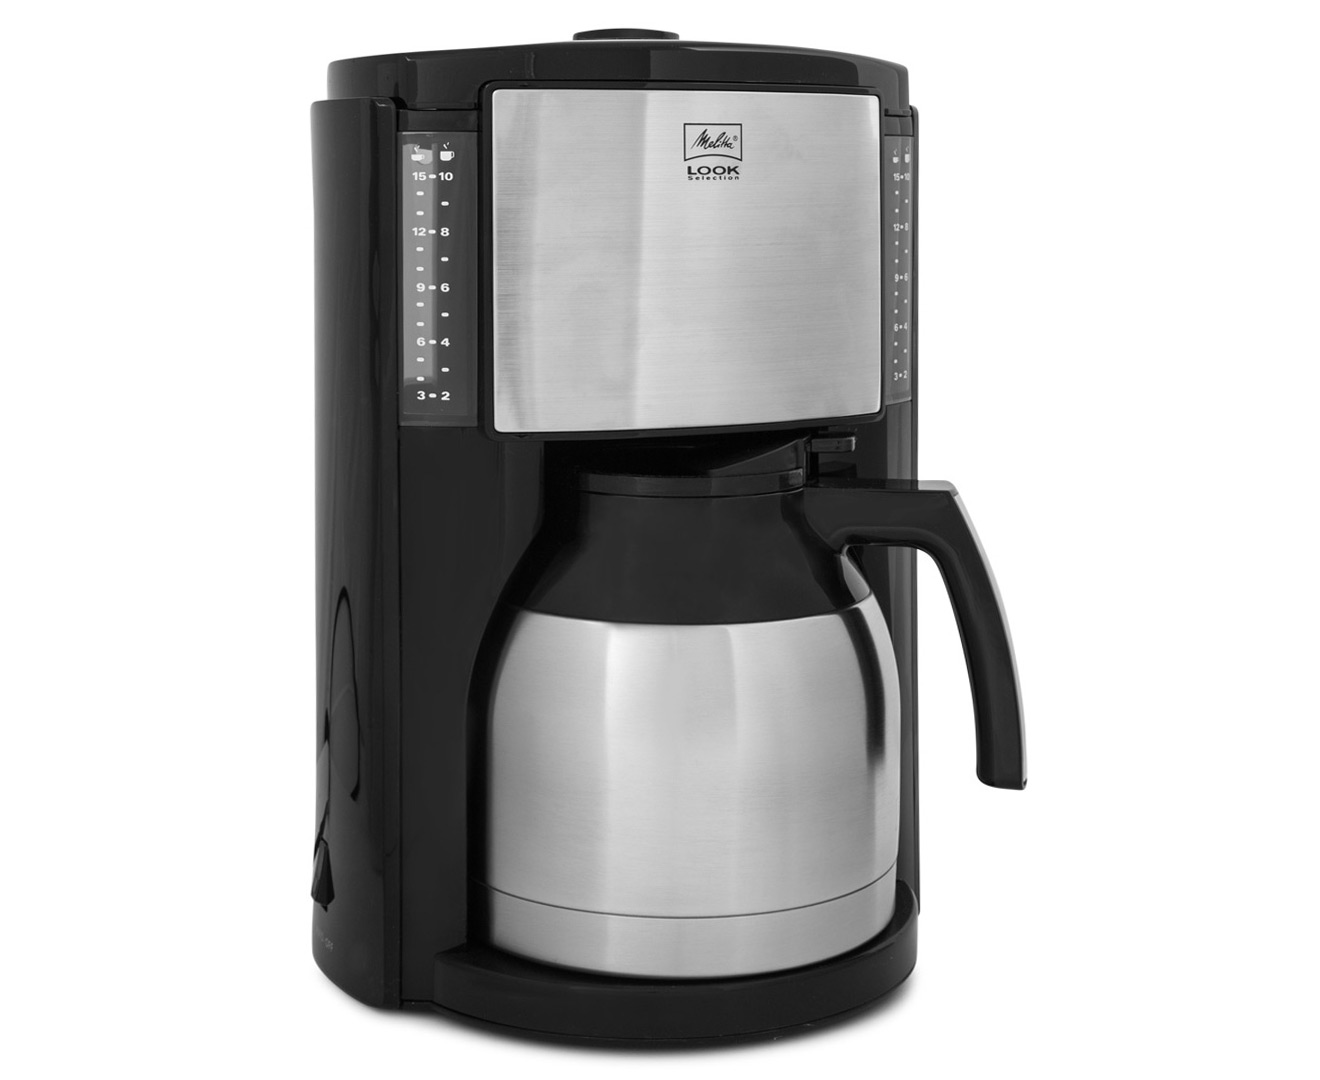 melitta look therm selection coffee machine black silver great daily deals at australia 39 s. Black Bedroom Furniture Sets. Home Design Ideas